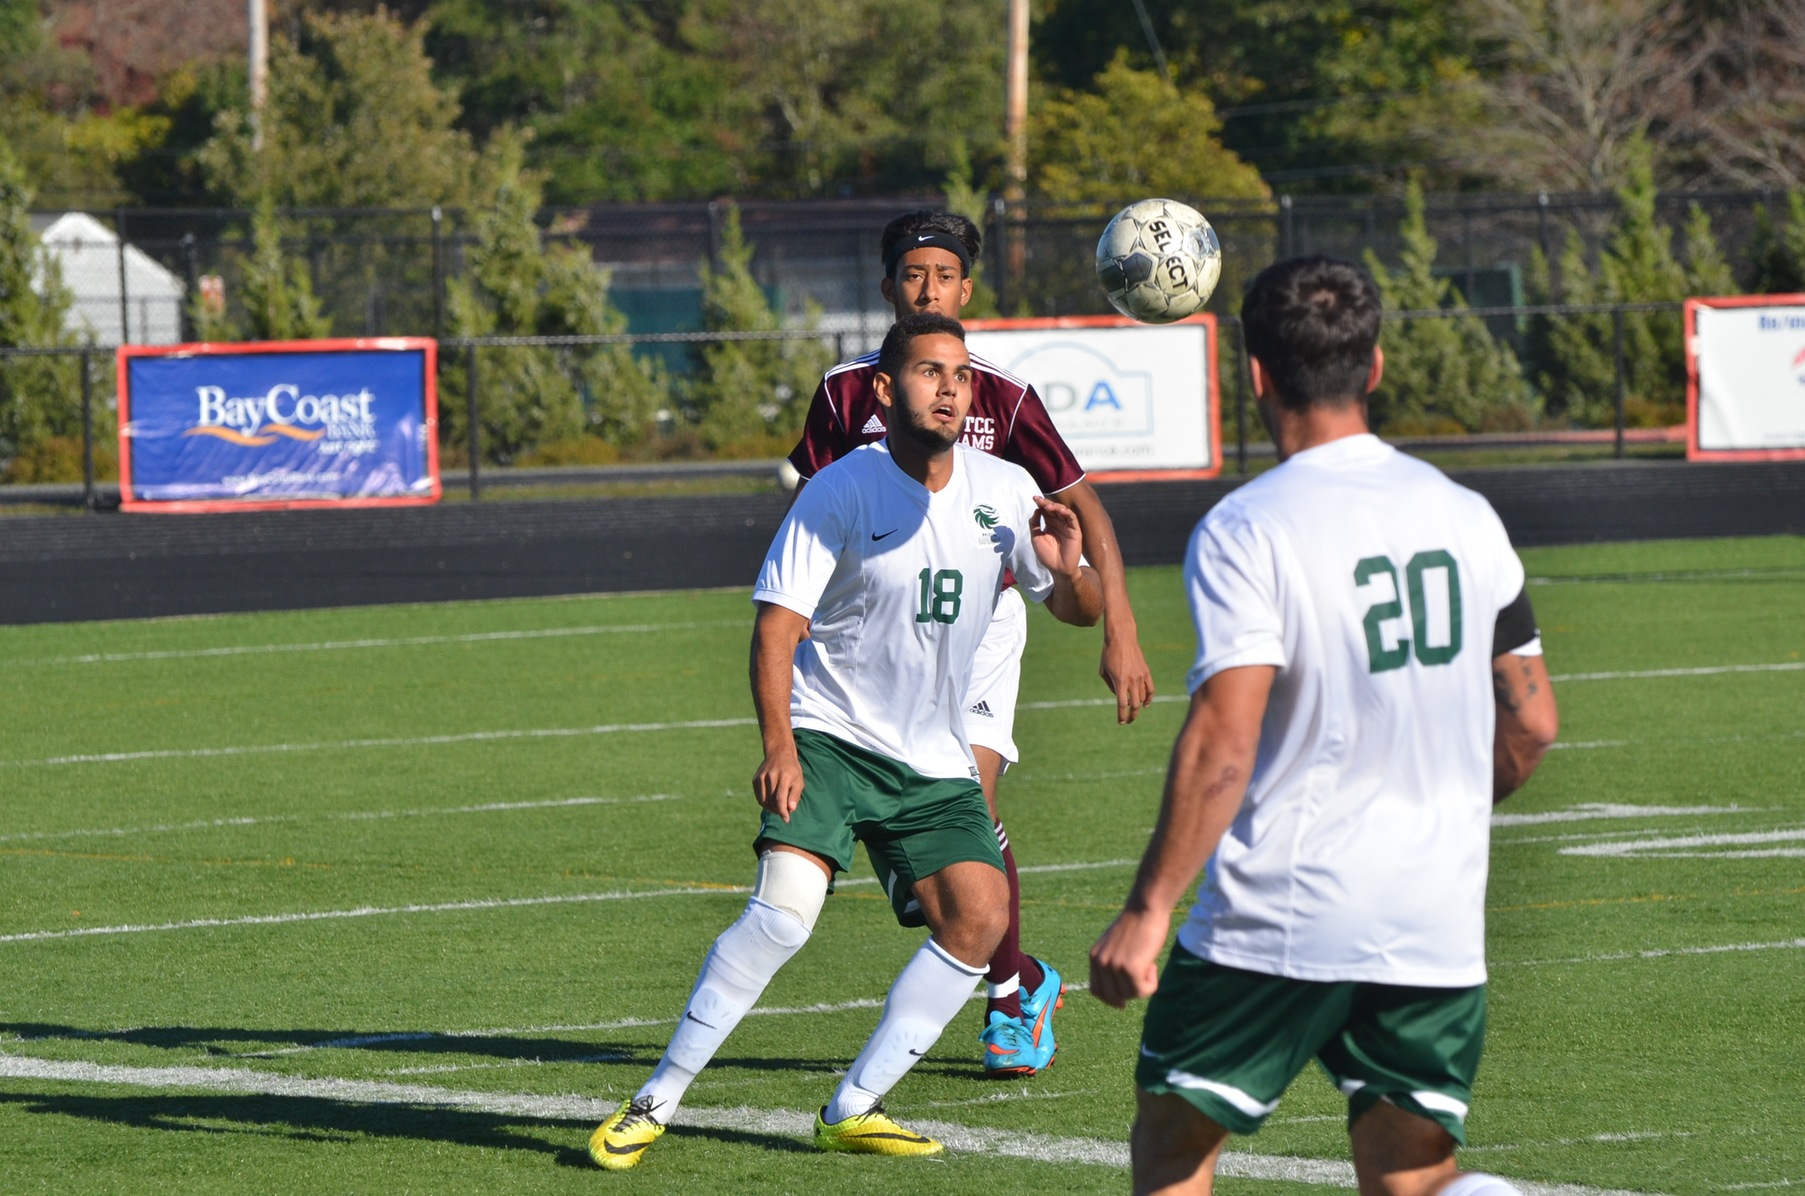 Bayhawks Continue Winning Ways with a 3-1 Victory Over Quincy College